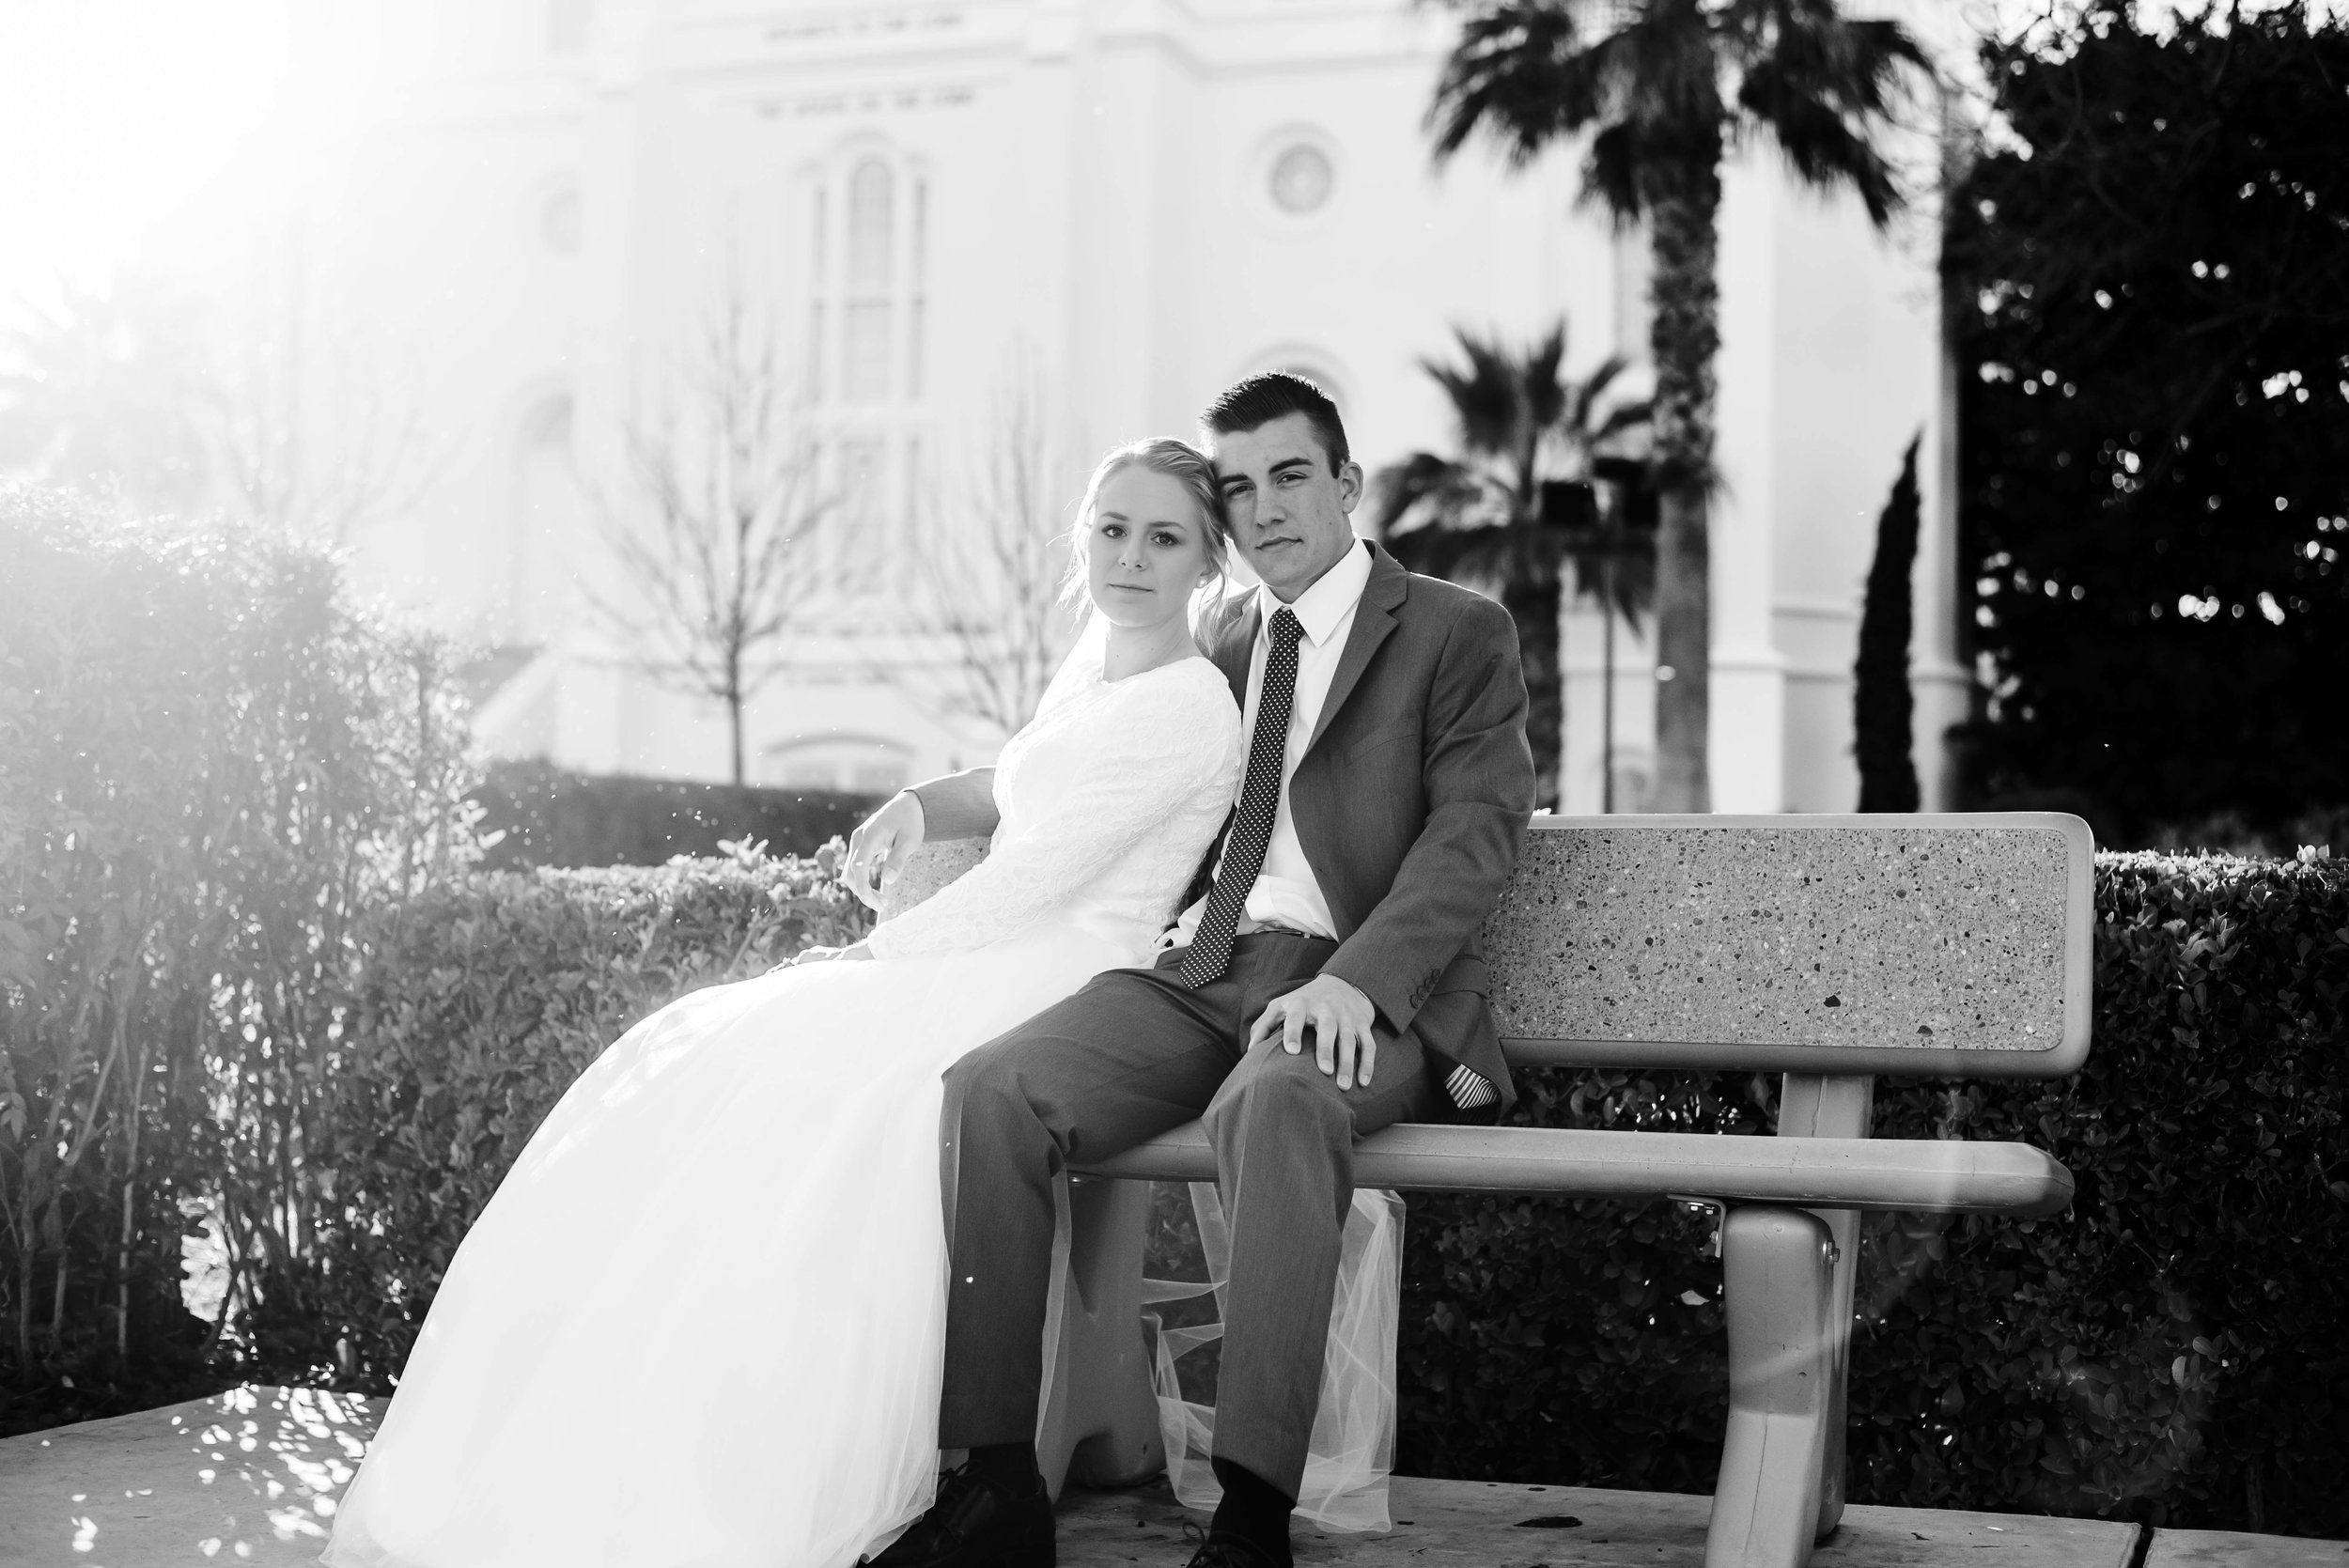 Braxton+Kaycee-BRIDALS-Sadie-Banks-Photography-101.jpg